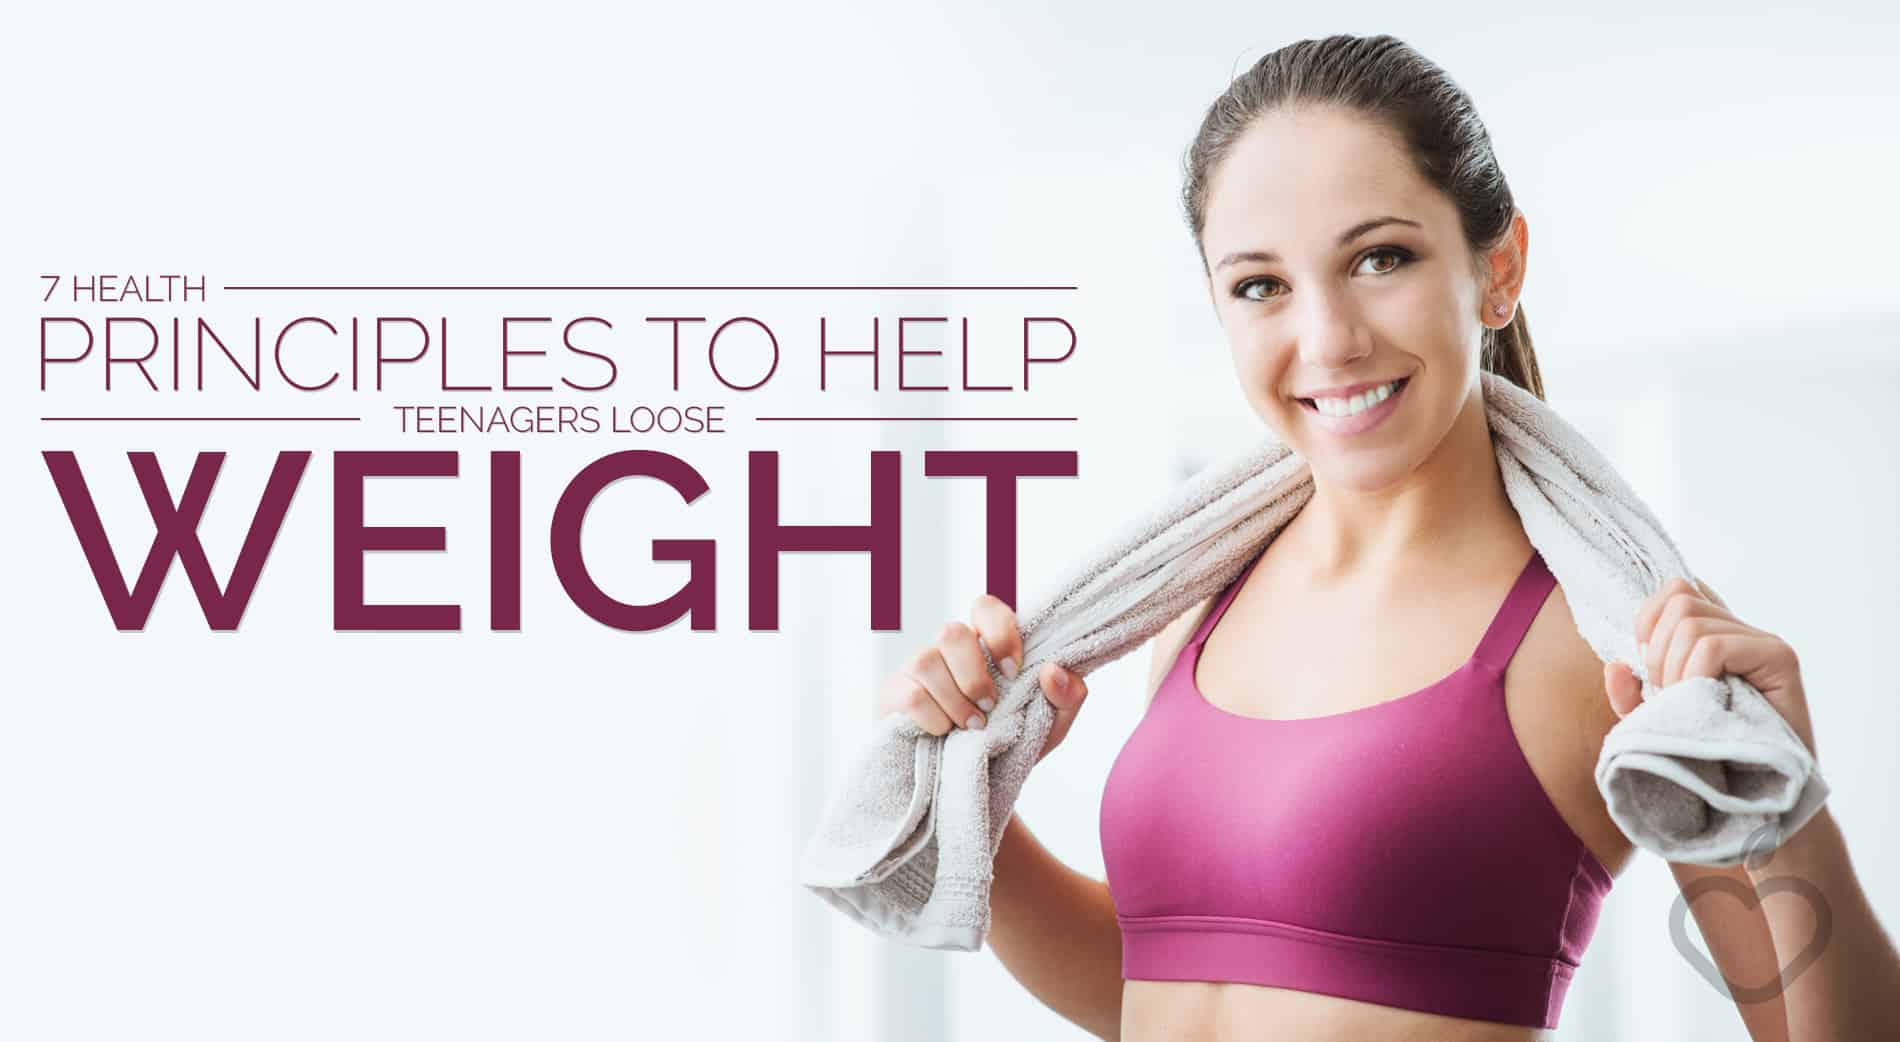 Loose Weight Image Design 1 - 7 Health Principals to Help Teenagers Lose Weight